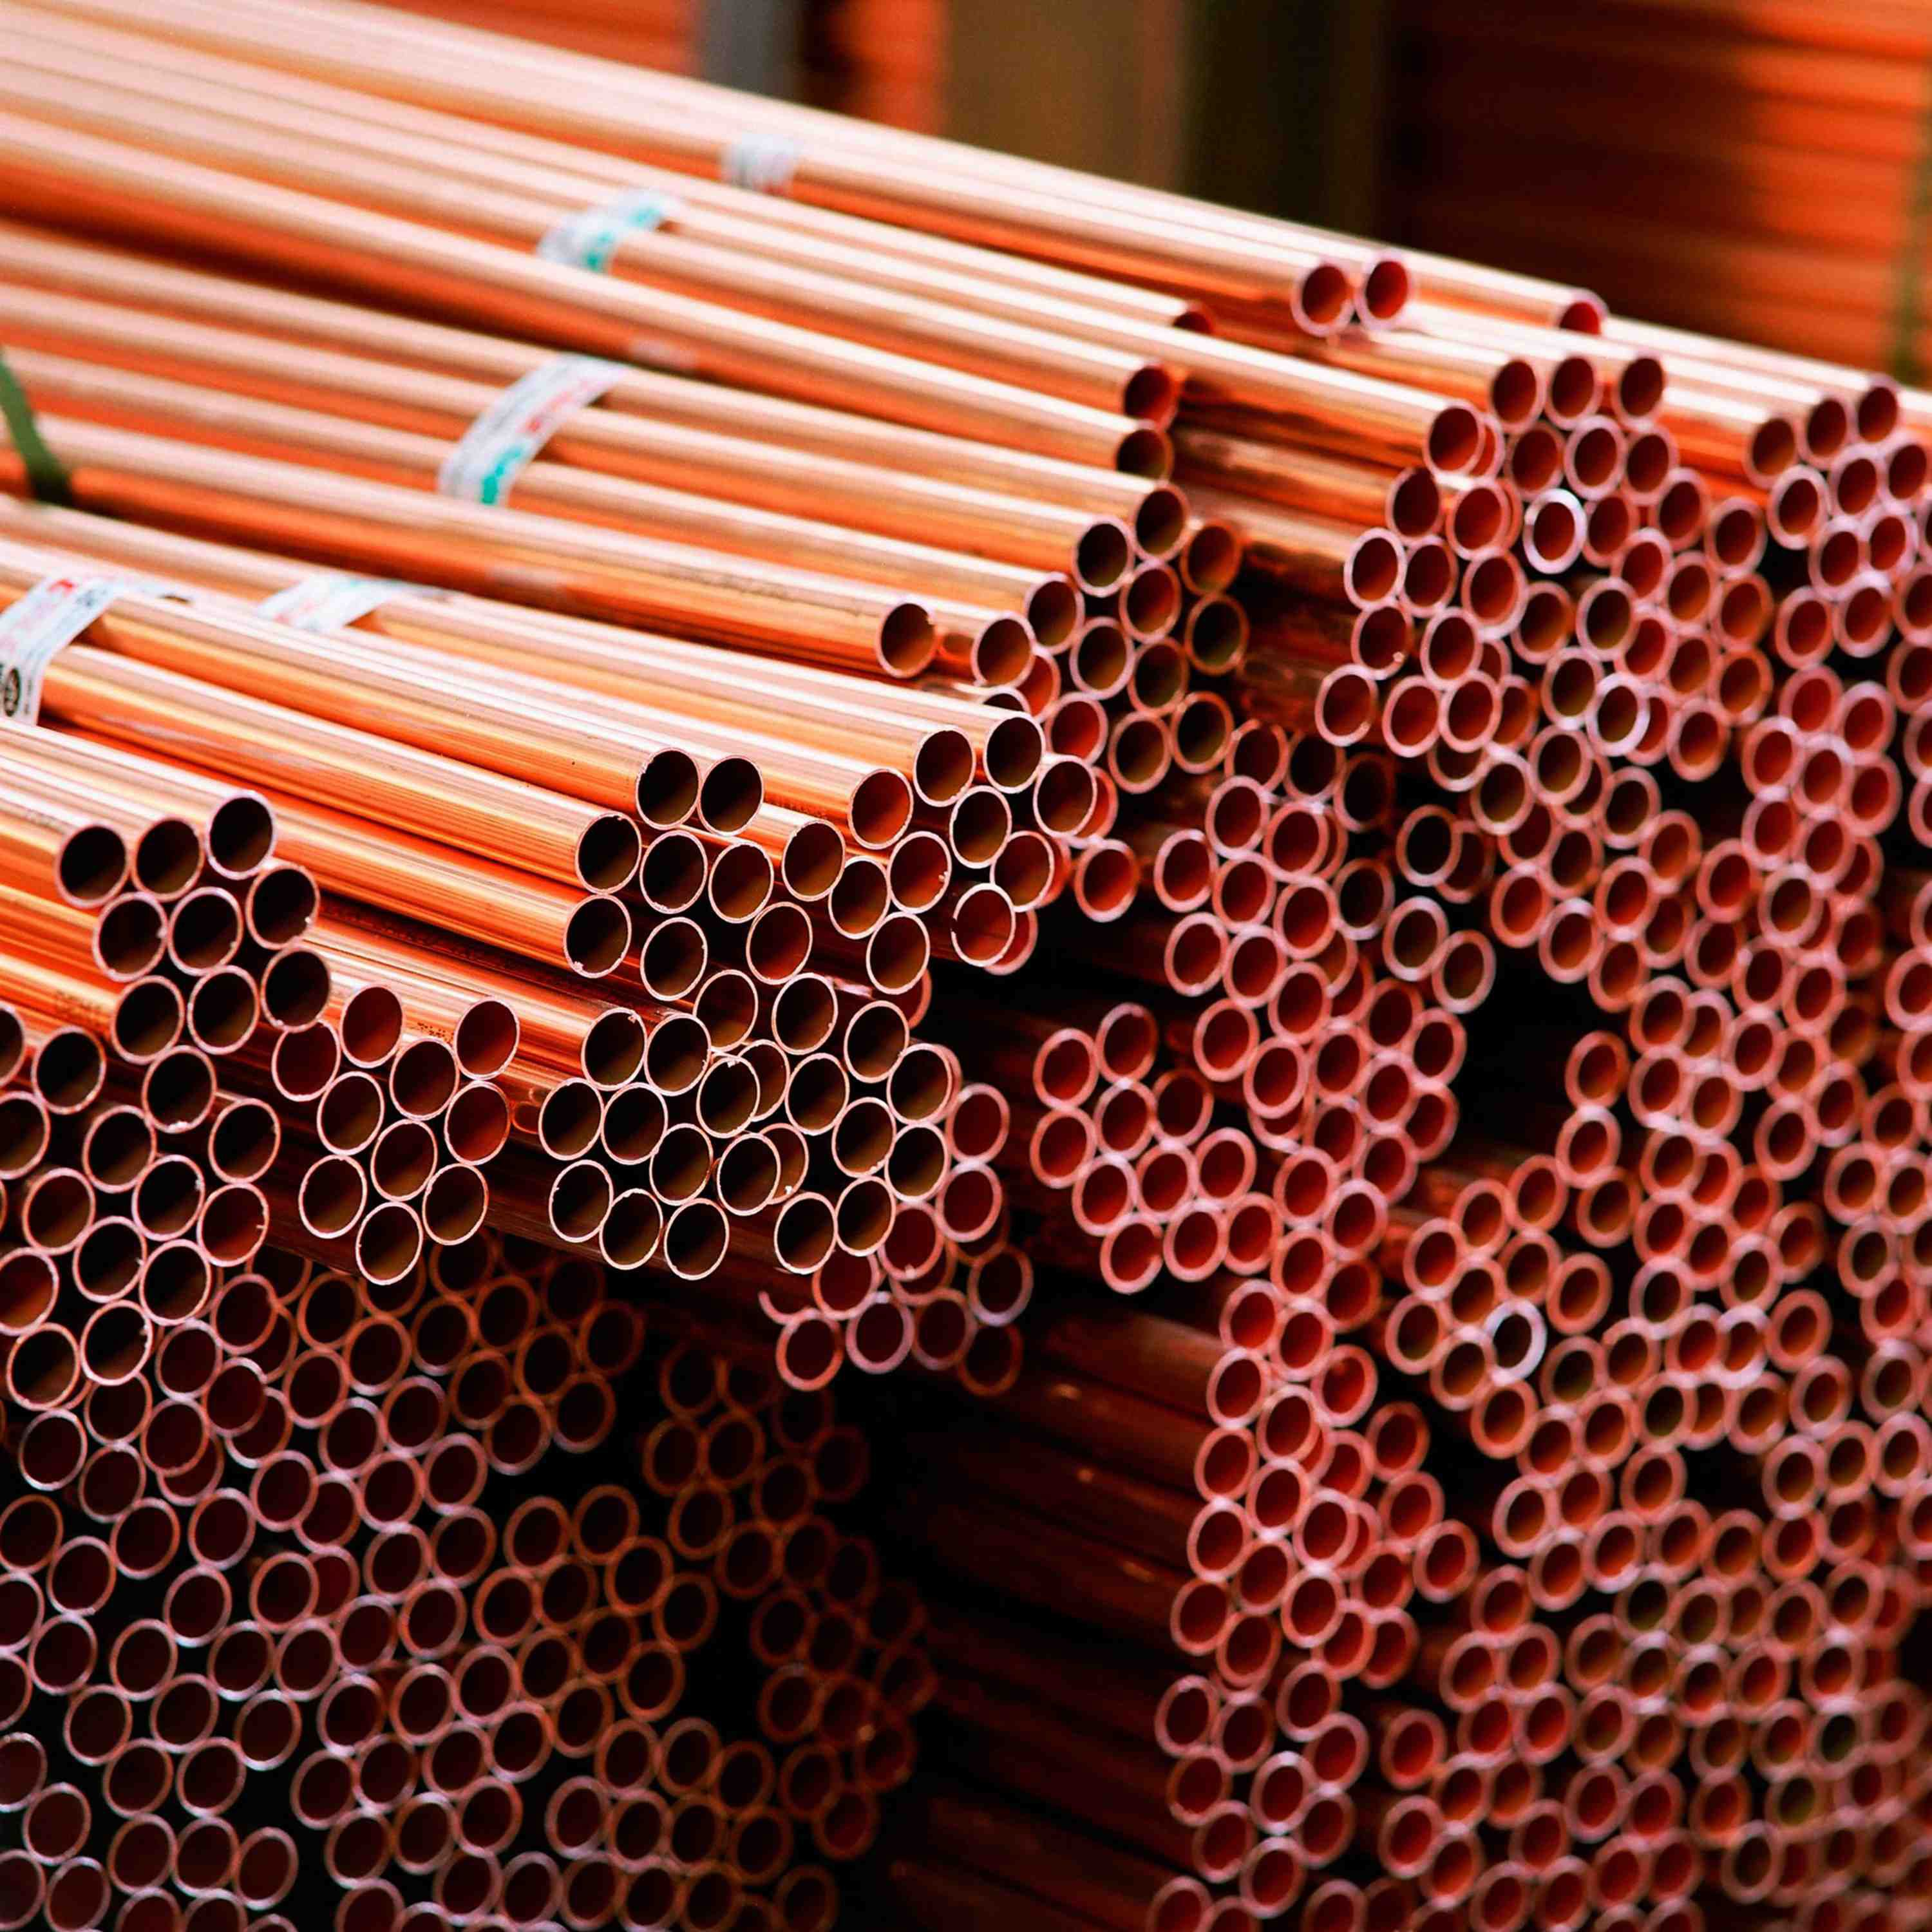 Learn About the Common Uses of Copper